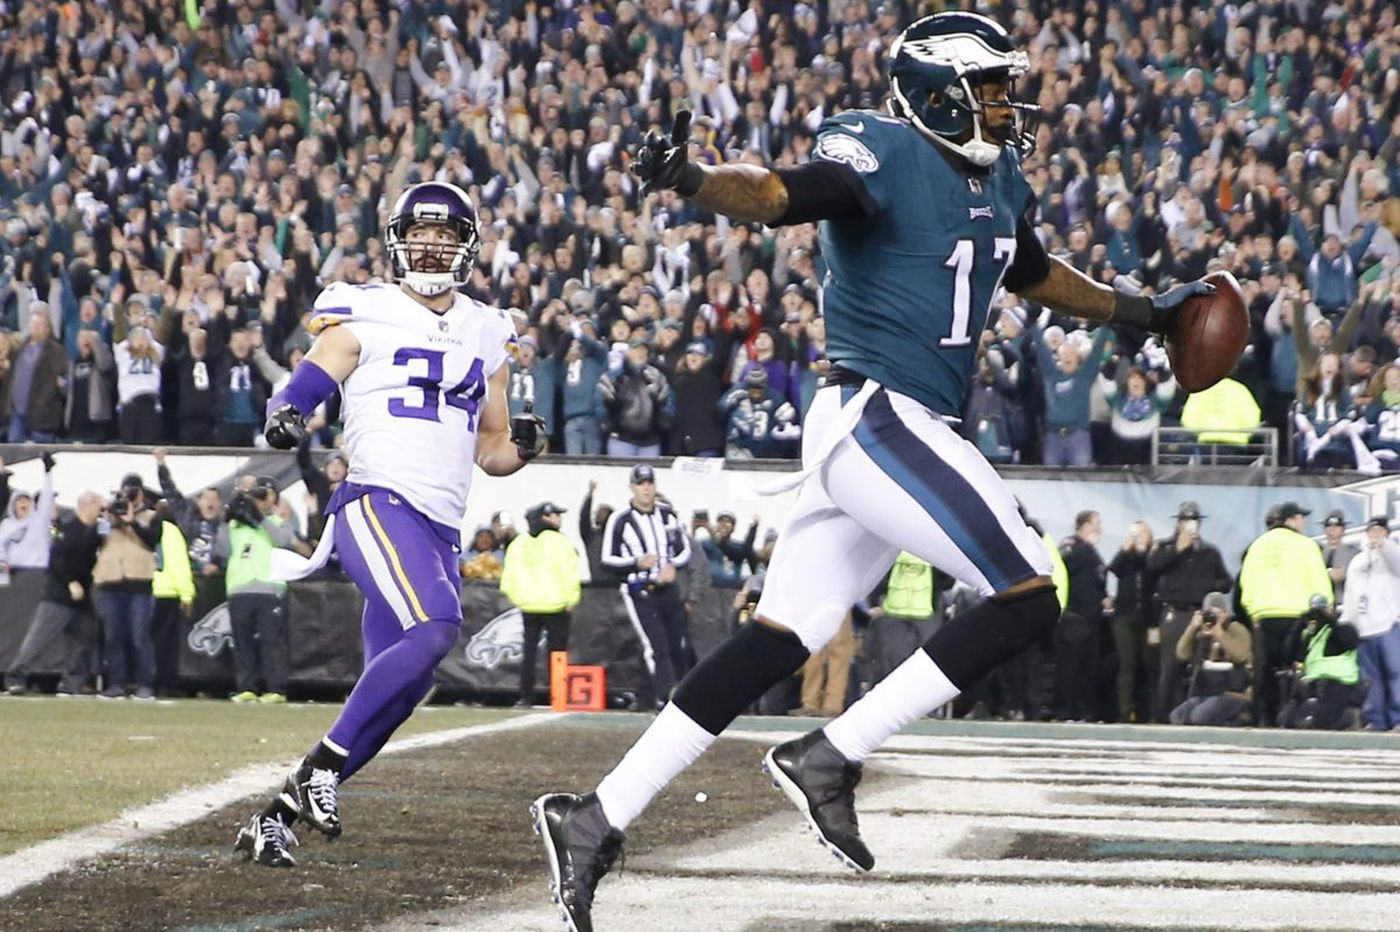 Once college roommates, Eagles WR Alshon Jeffery and Patriots CB Stephon Gilmore will compete in one of Super Bowl's marquee matchups